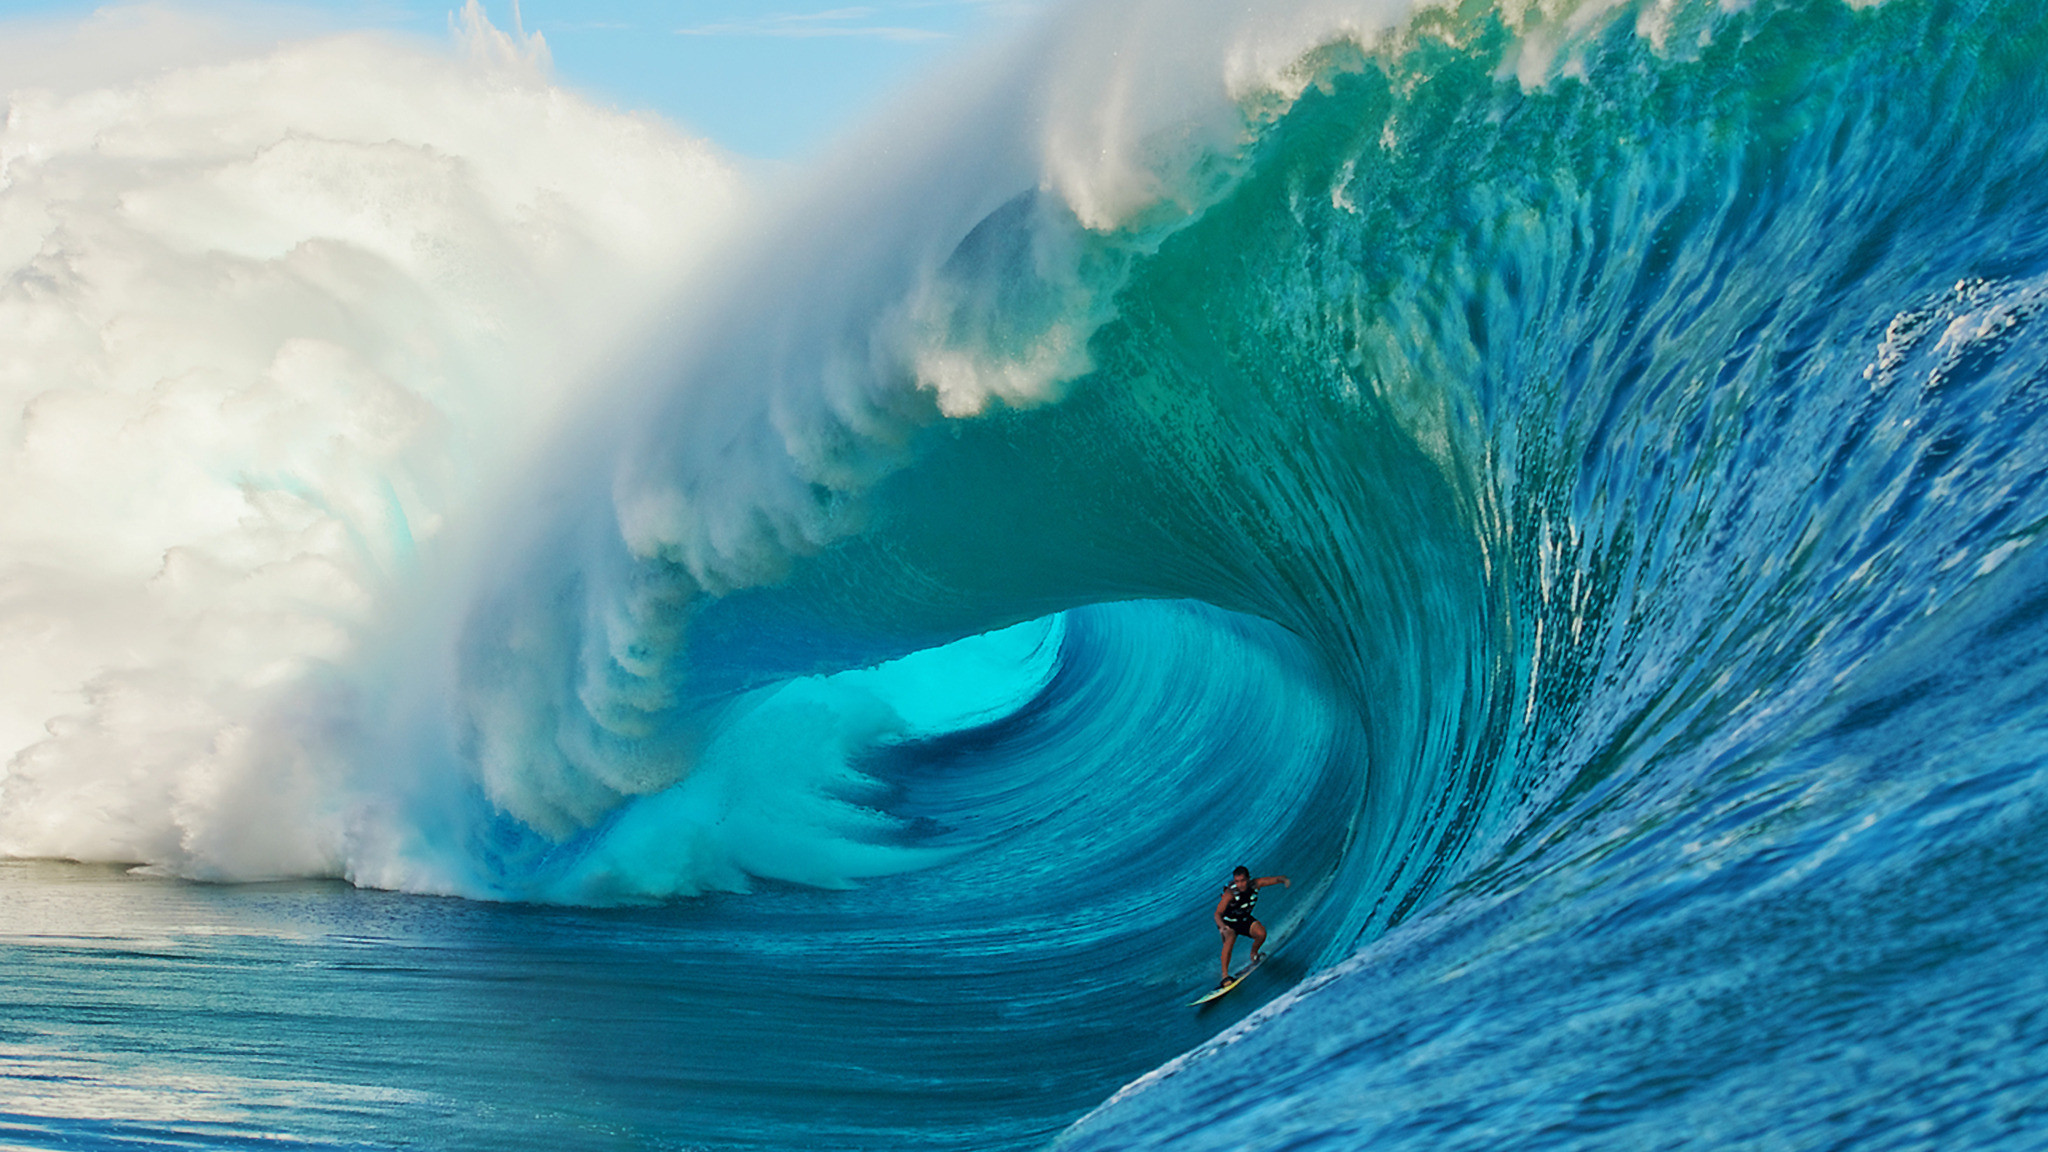 maverick waves | Mavericks Surf HD Wallpaper | FAVORITE CAREERS